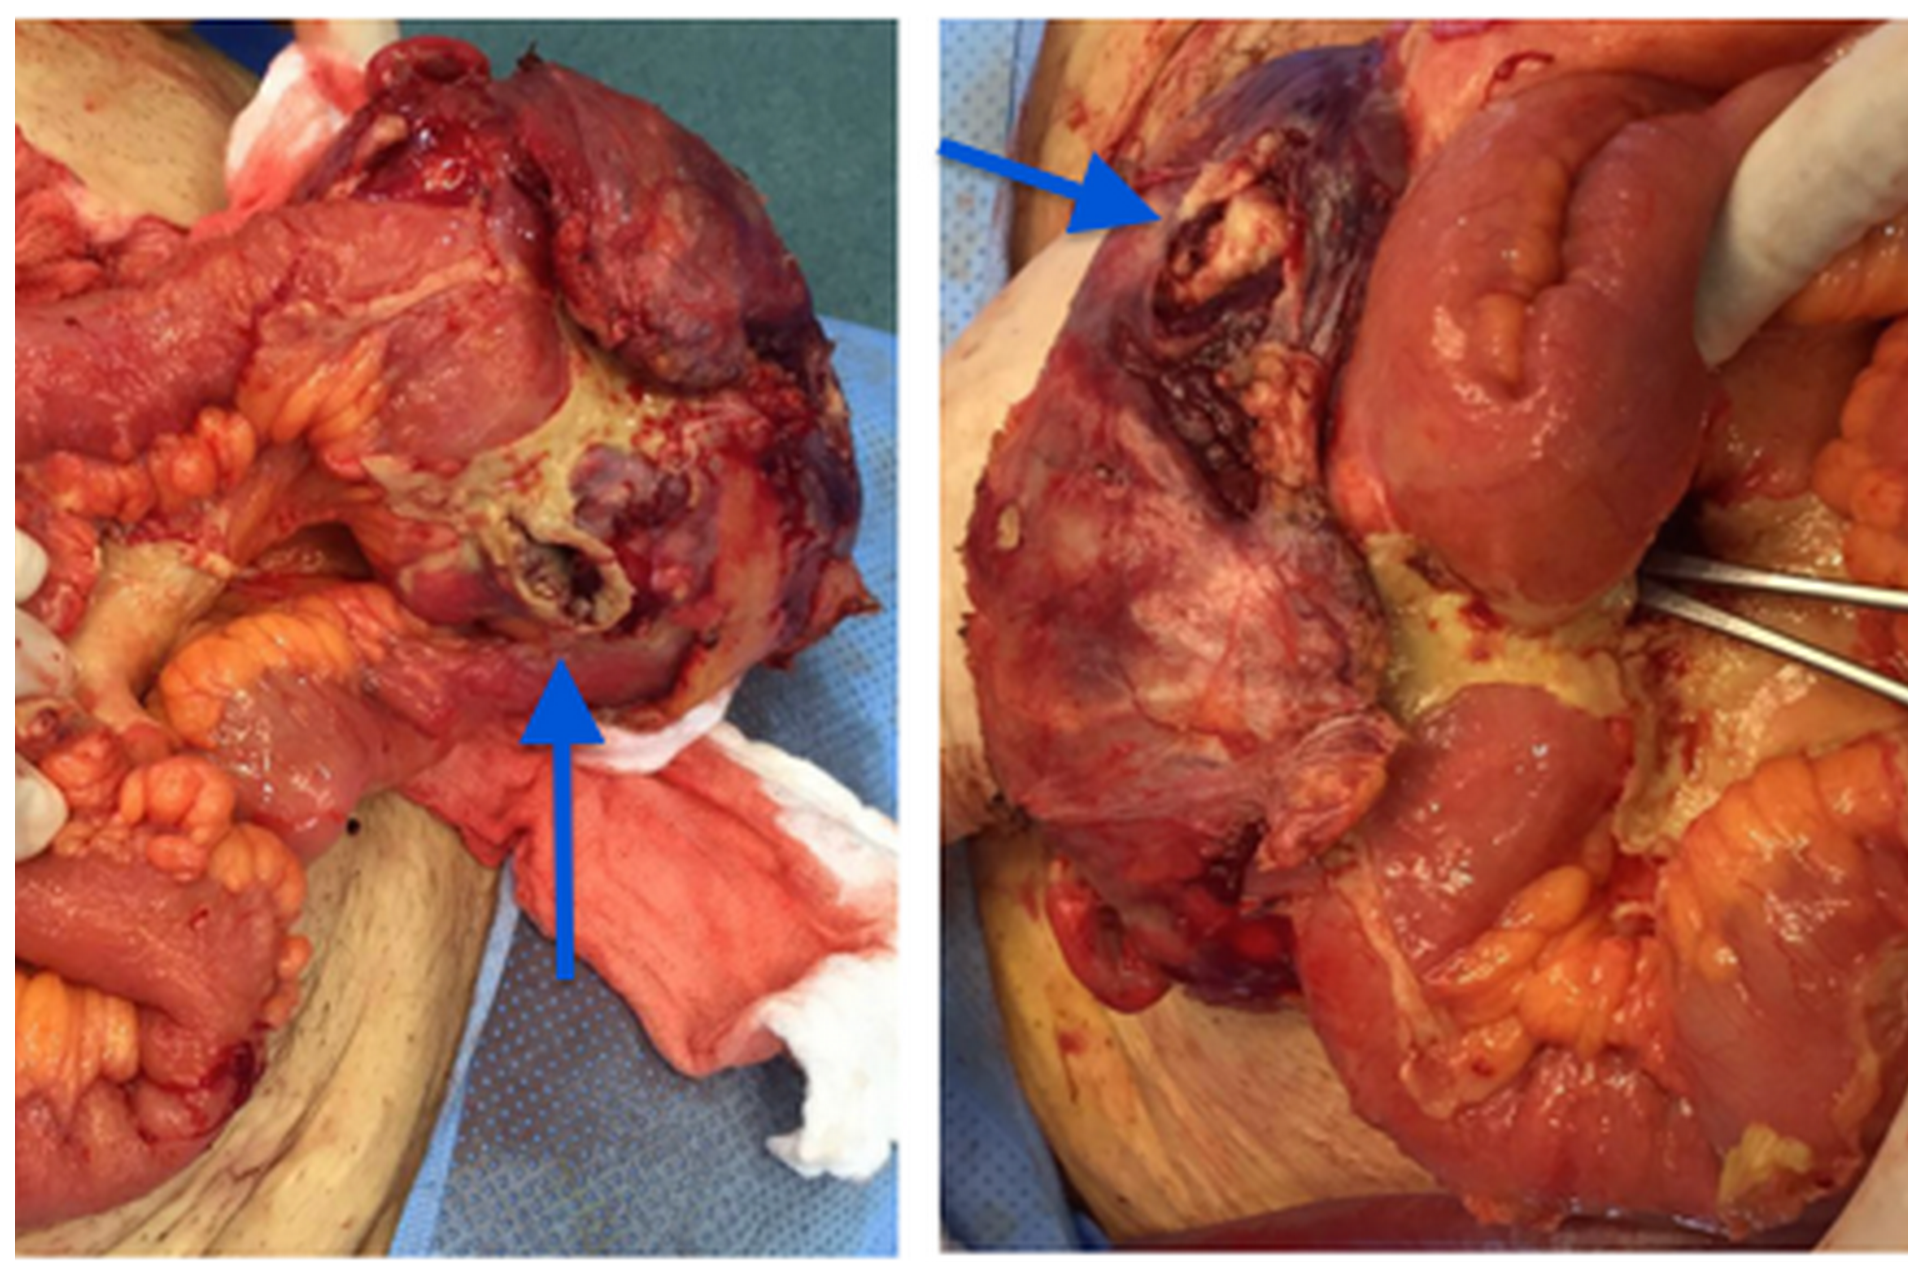 Right inguinal mass in communication with the intestinal loop (arrows).